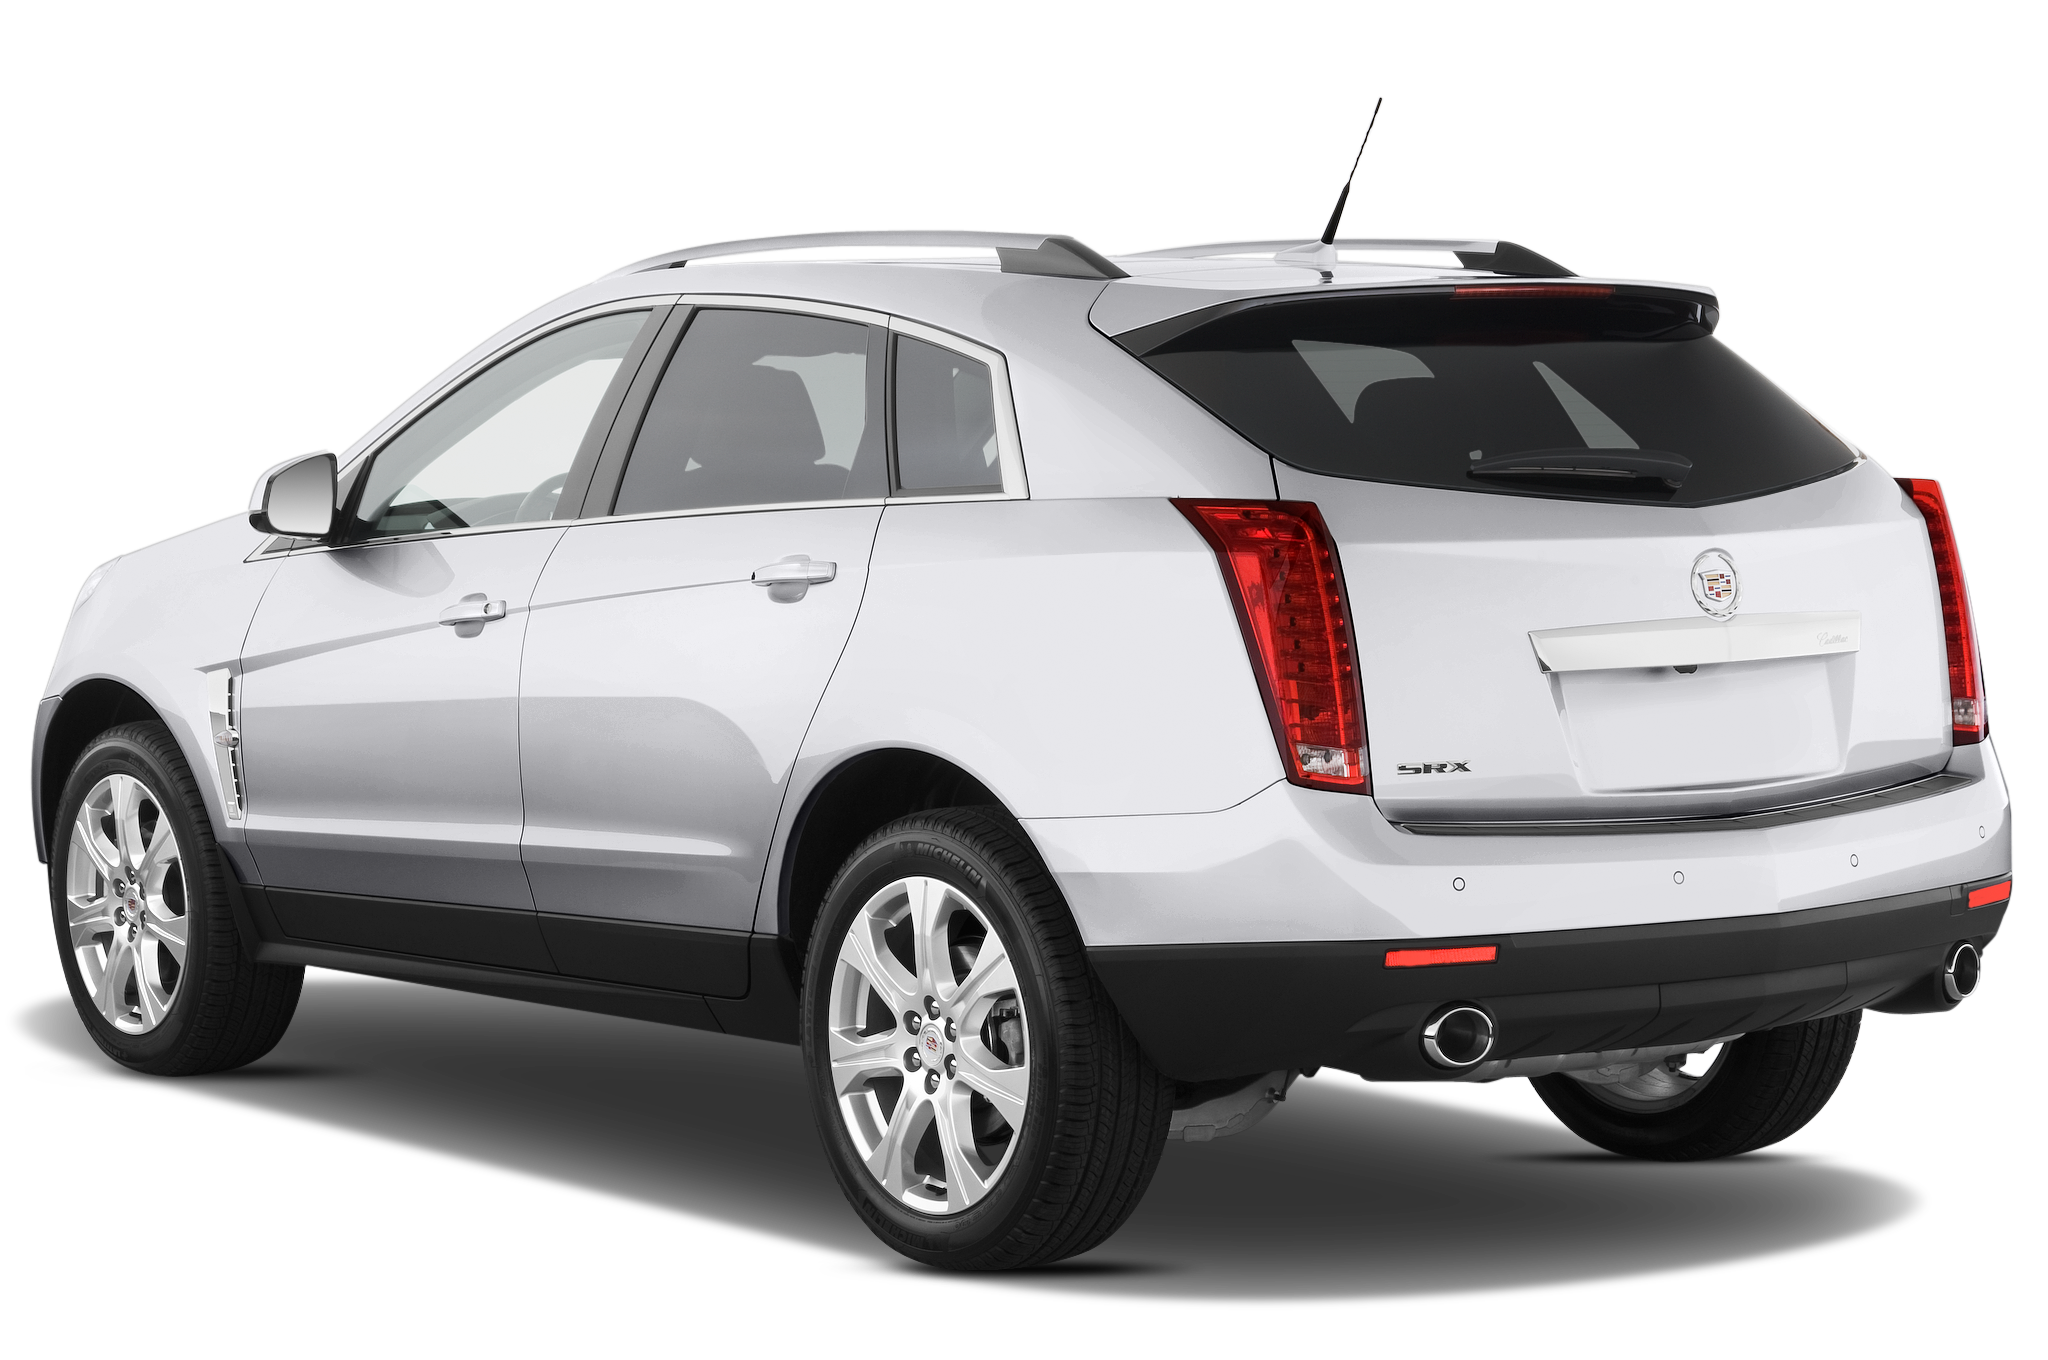 sale edmonton in for srx used inventory cadillac alberta